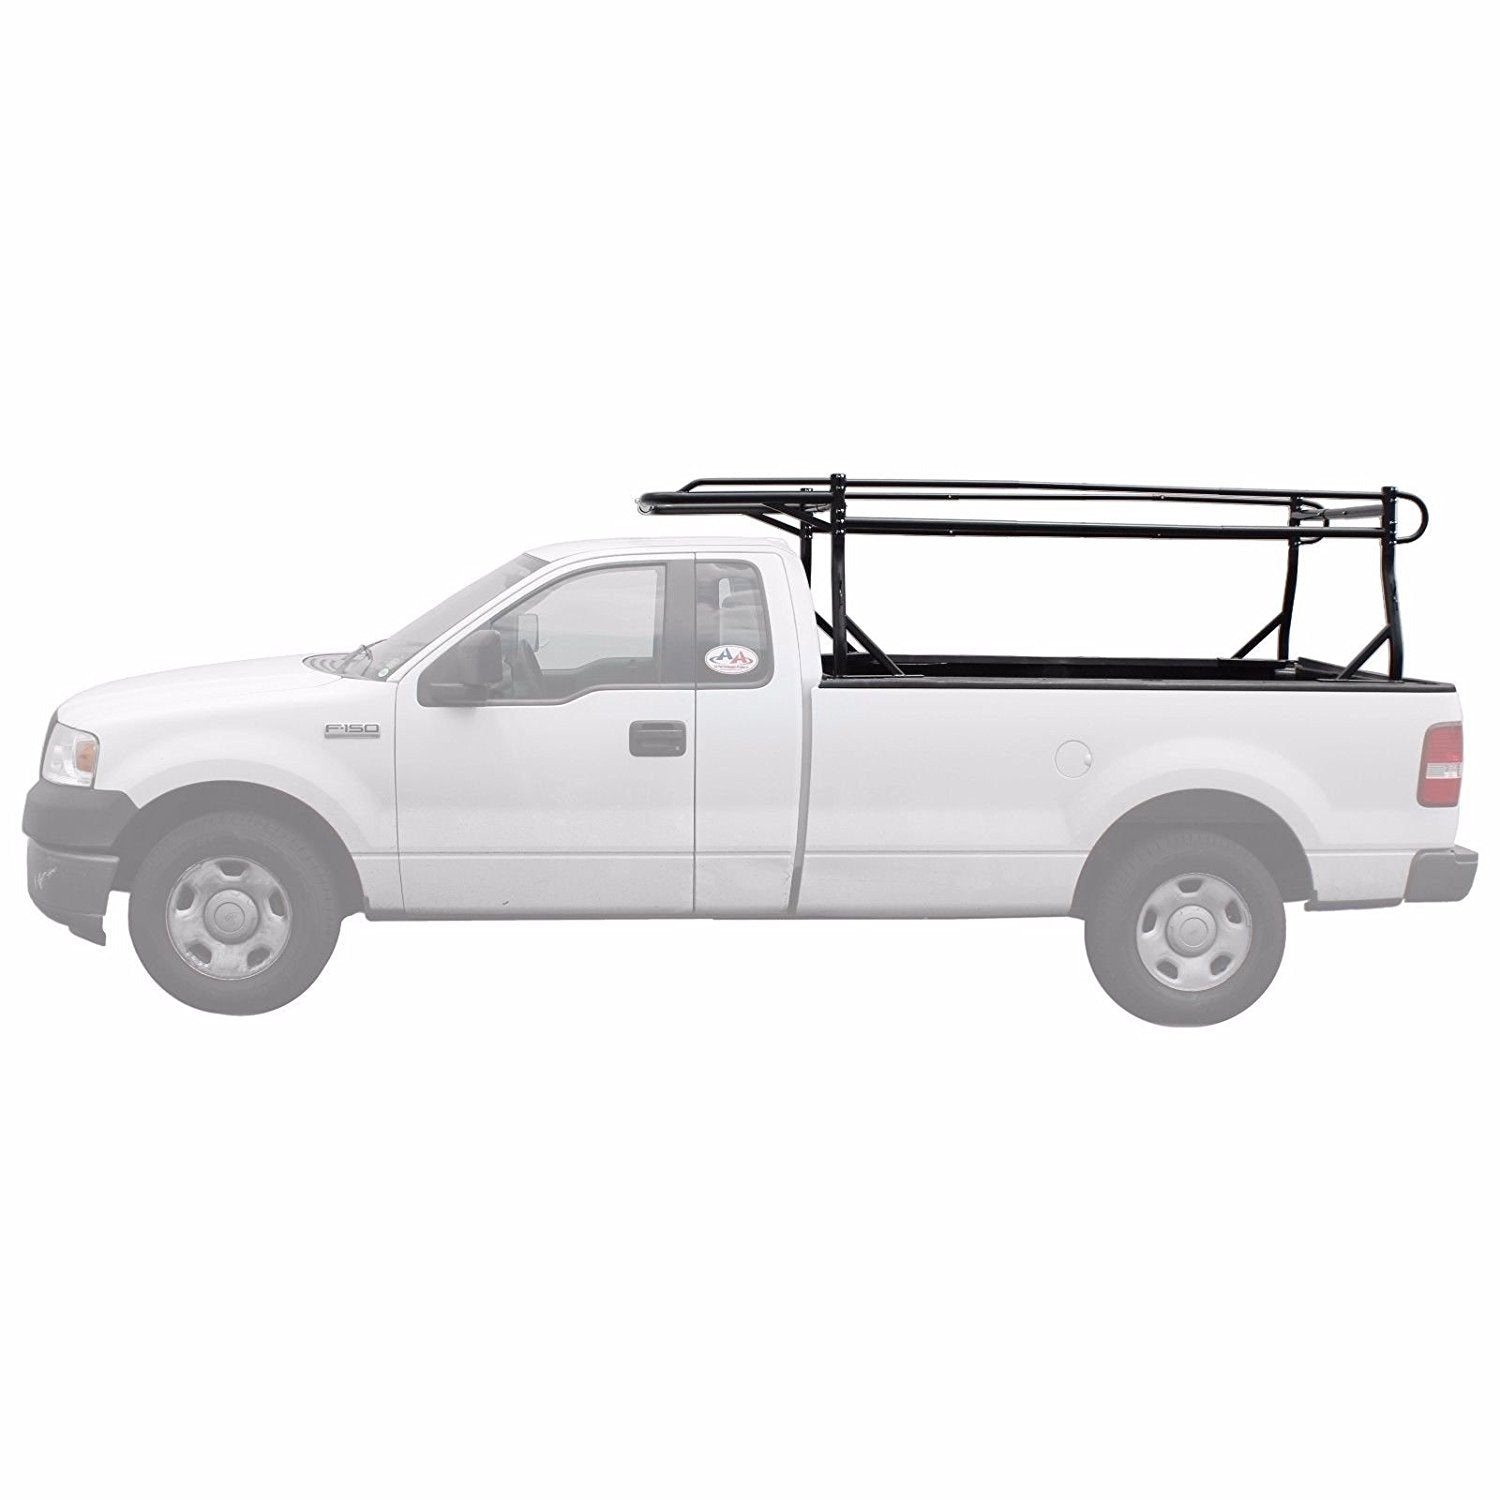 Non-Drilling C-Clamps Pick-up Truck Utility Ladder Rack Matte White AA-Racks X35 Truck Rack with 8 AA Products Inc